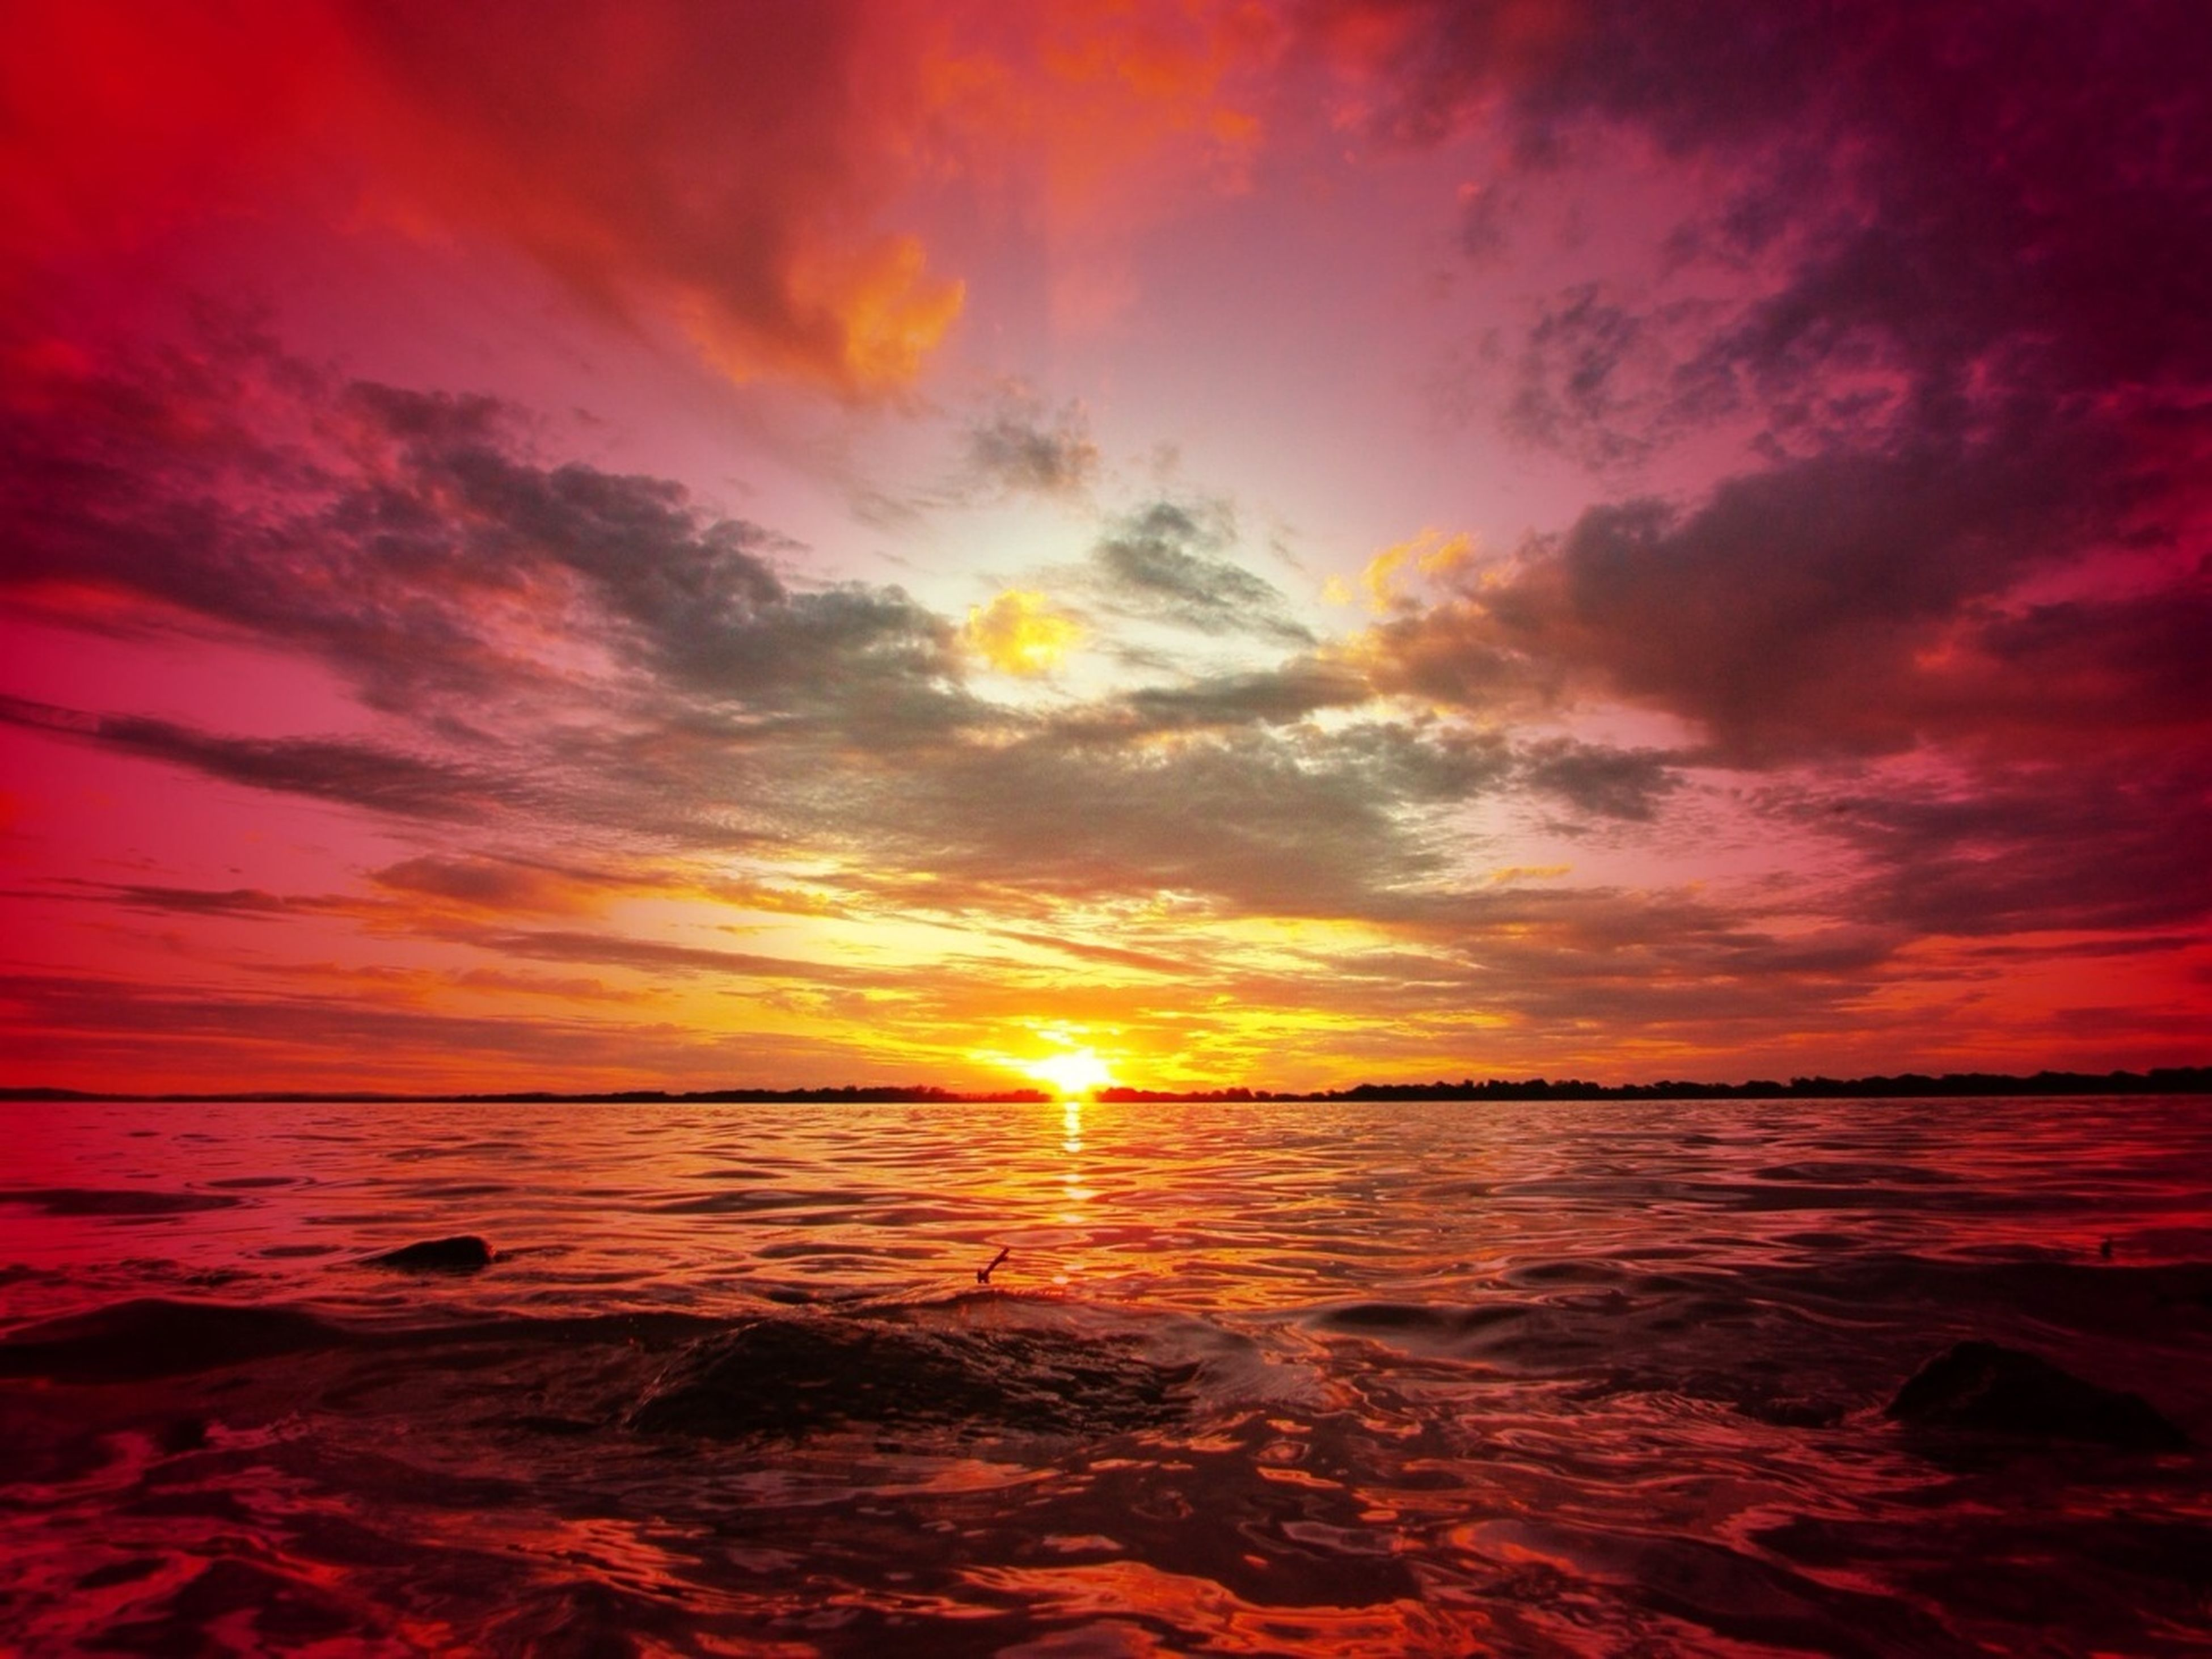 sunset, water, sea, scenics, horizon over water, tranquil scene, beauty in nature, sky, tranquility, orange color, idyllic, cloud - sky, beach, nature, reflection, sun, shore, dramatic sky, waterfront, cloudy